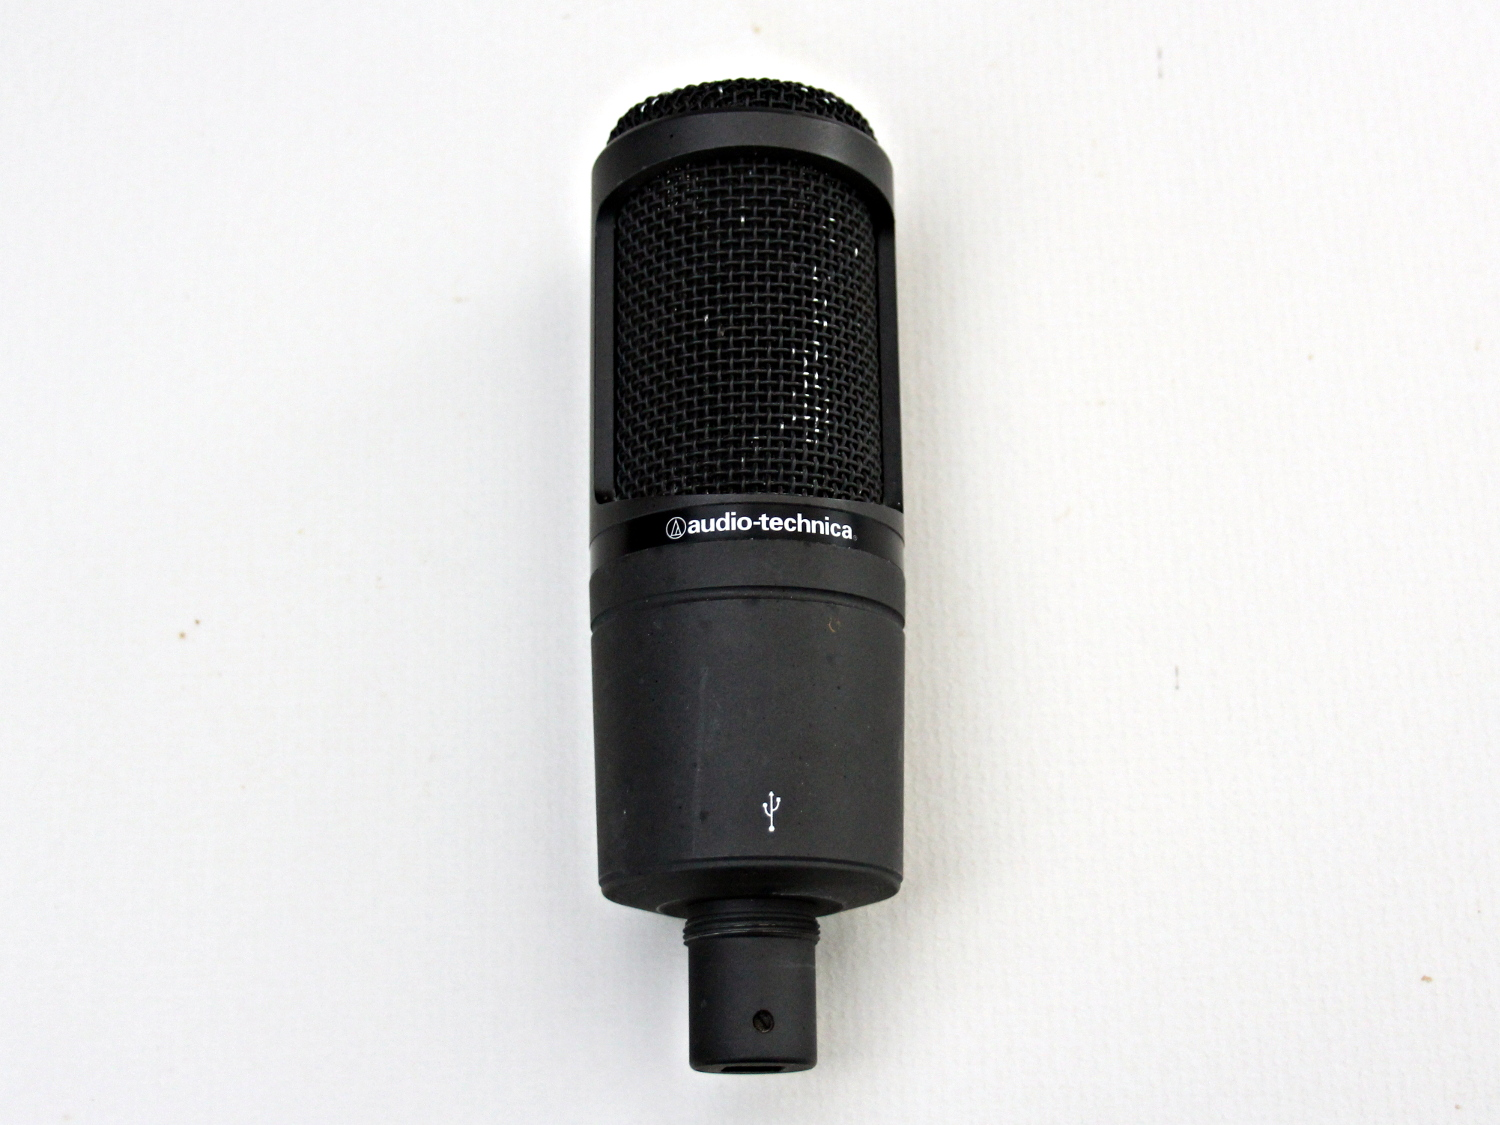 An AT2020 USB microphone, a reasonably high quality recording microphone that can connect directly to any computer